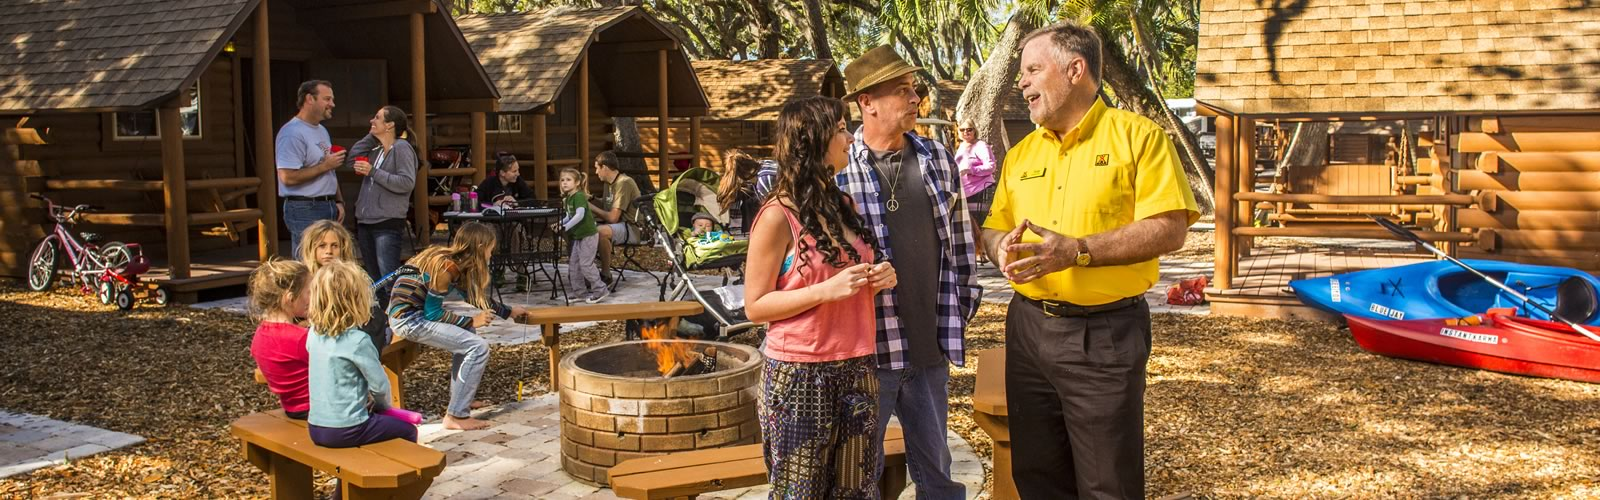 Over 500 locations - The knowledgeable staff members in yellow shirts at all of our North American locations provide you with the same KOA experience, no matter which location you choose